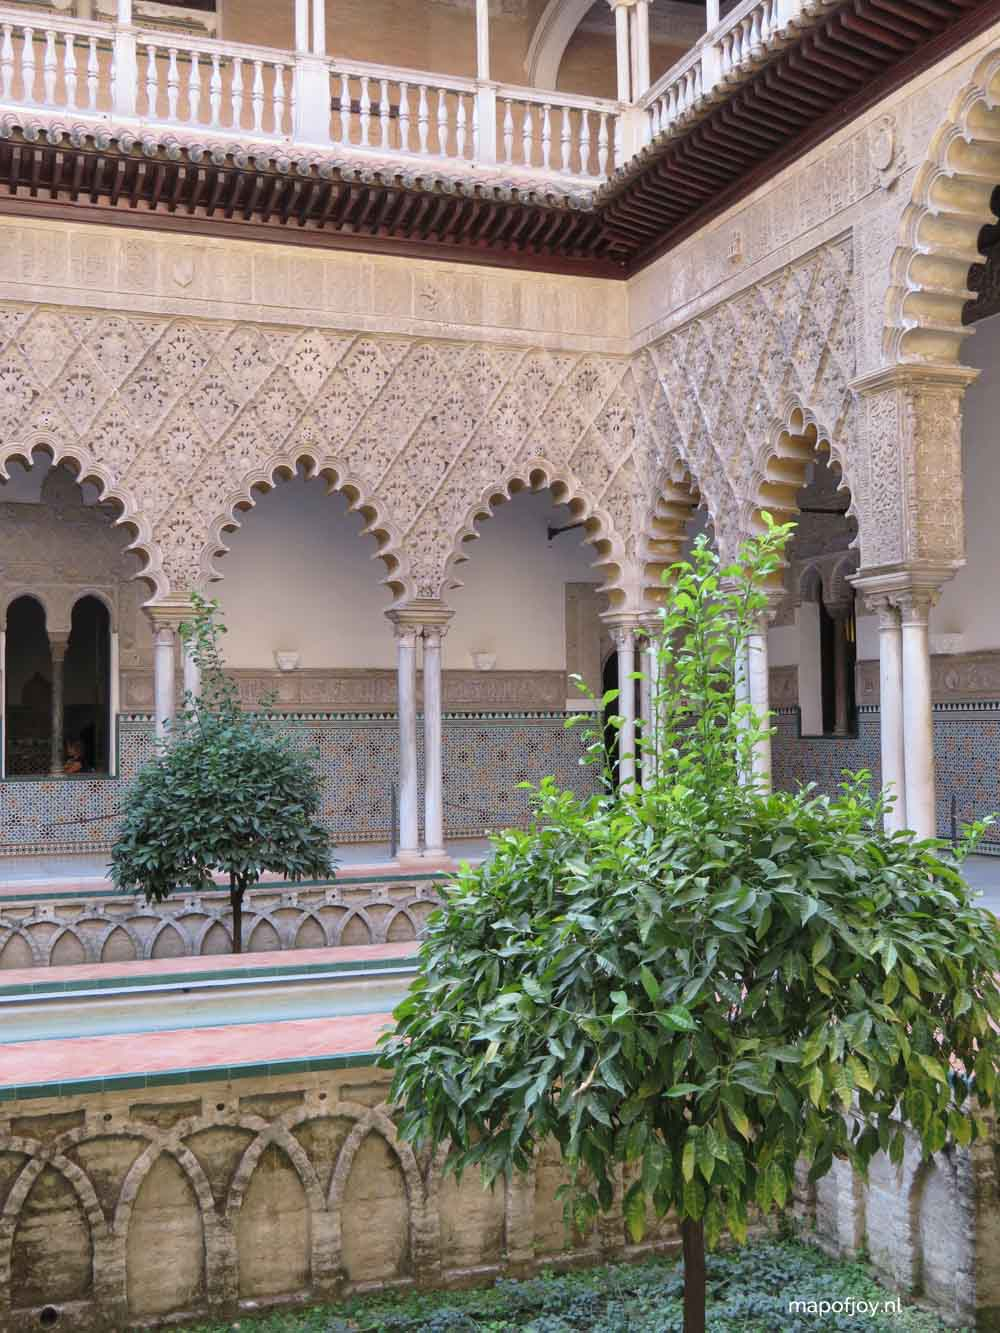 Real Alcazar, Sevilla - Map of Joy